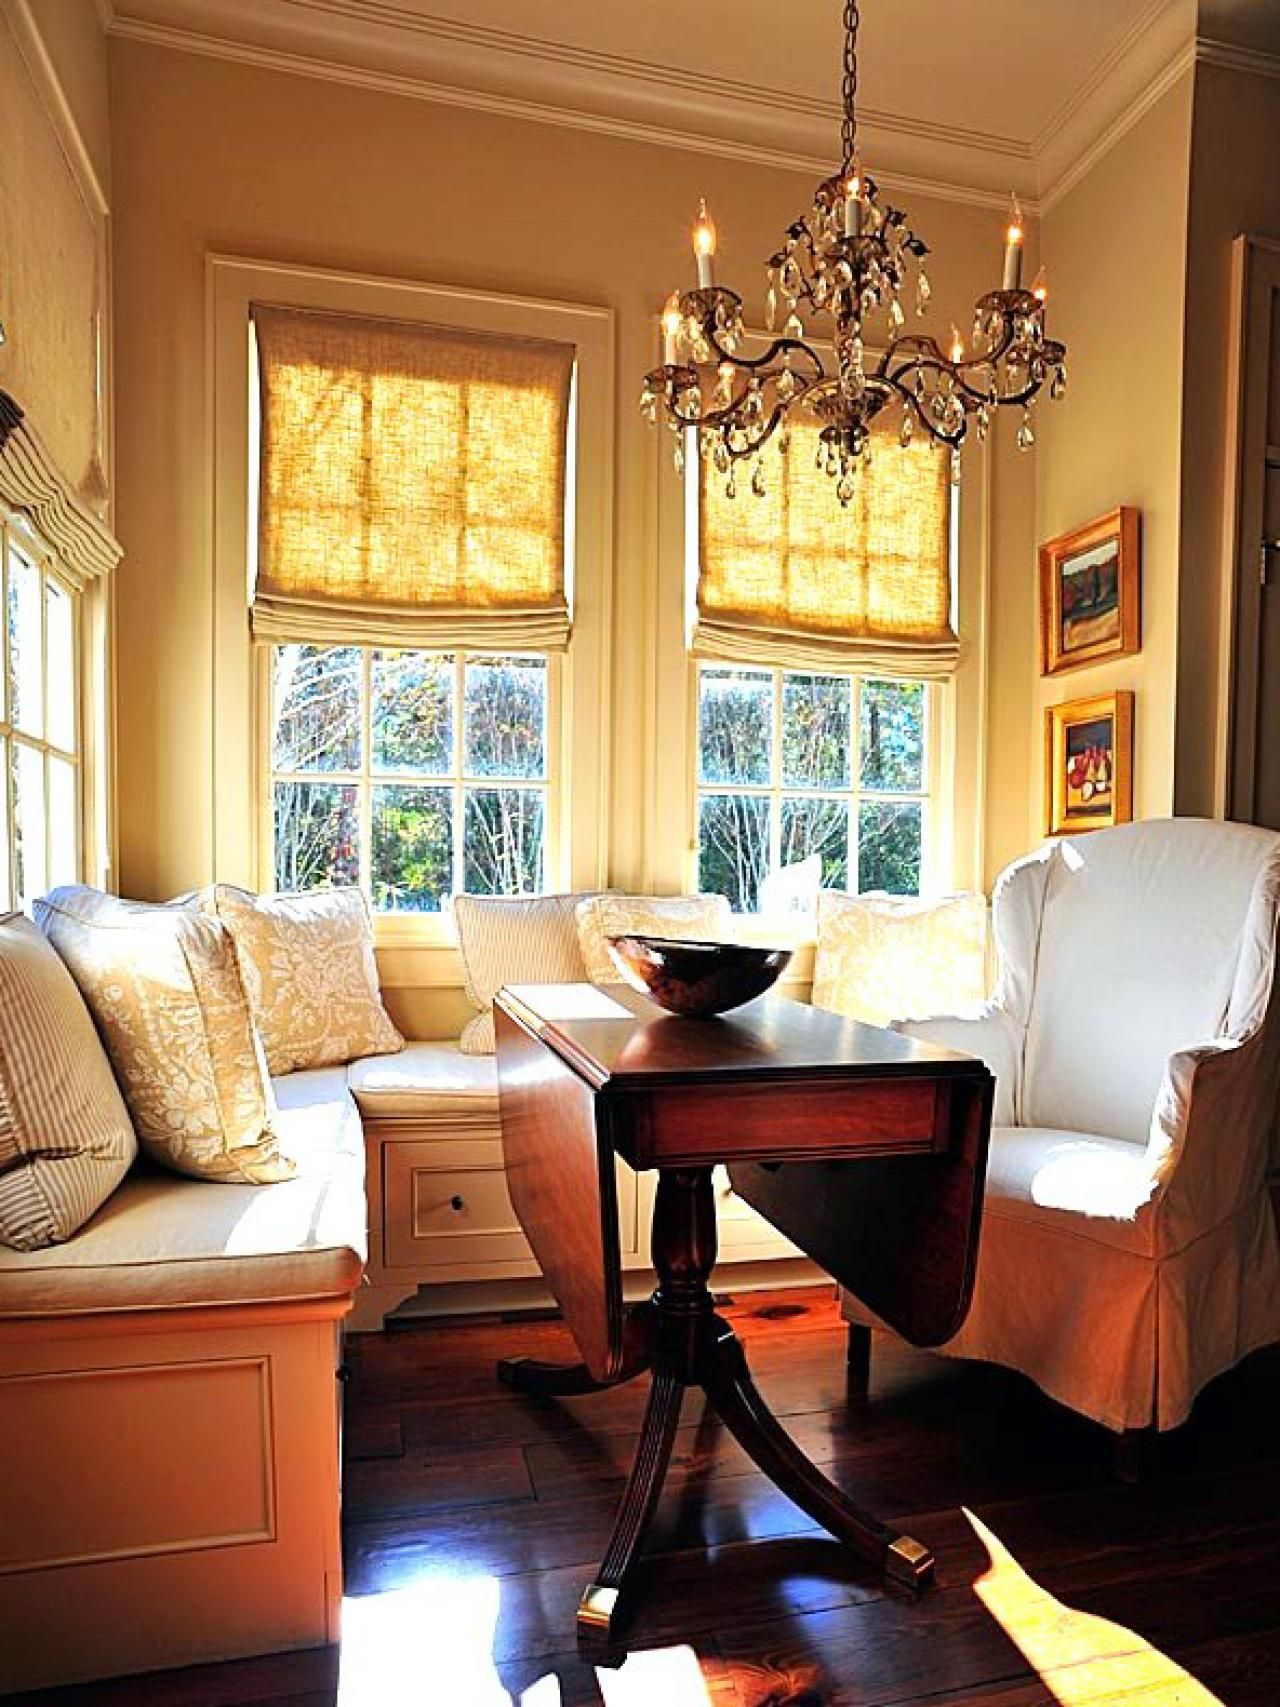 Dining Room Storage Ideas | Banquette seating, Wingback chairs and ...